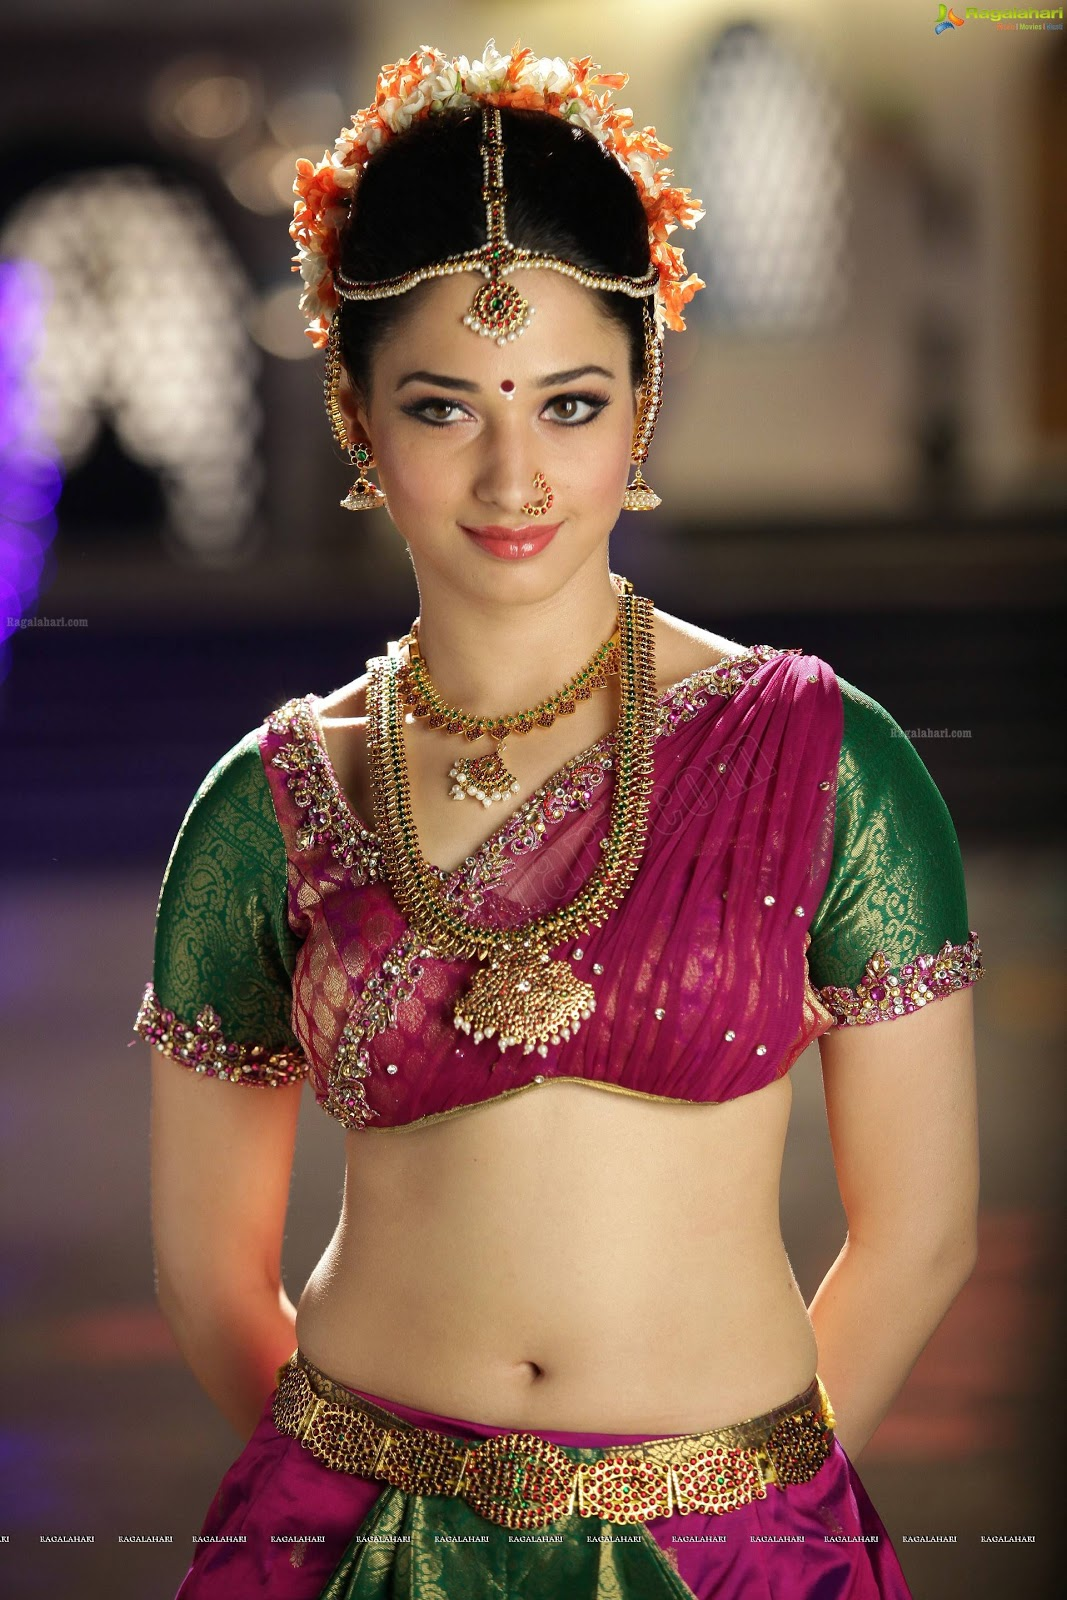 Tamanna Photo Gallery: Tamanna Bhatia Latest Hot Photos